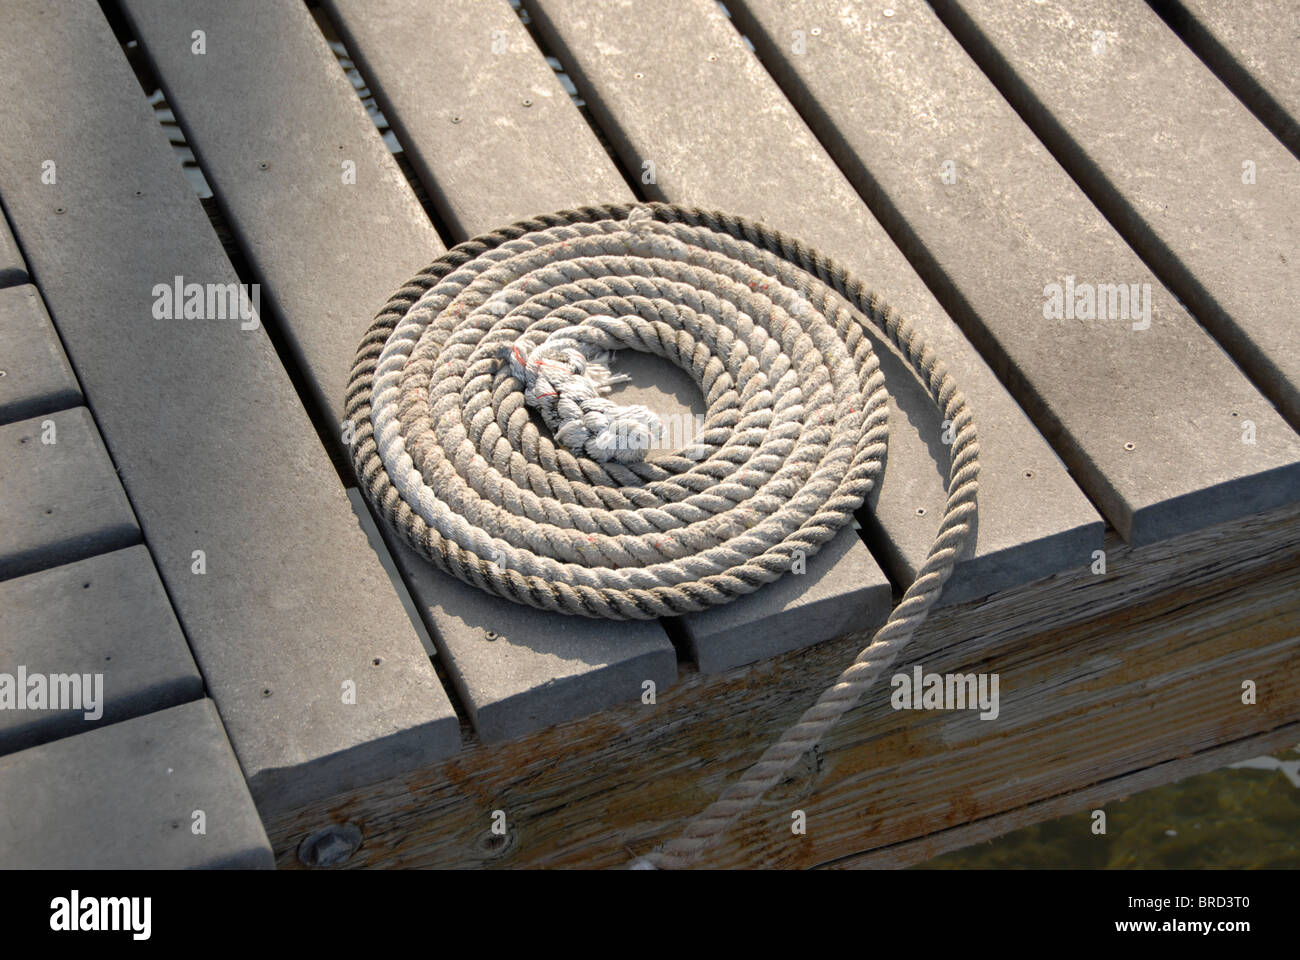 A coiled rope on the marina boatdock. Photo taken with a Nikon D200 camera. - Stock Image